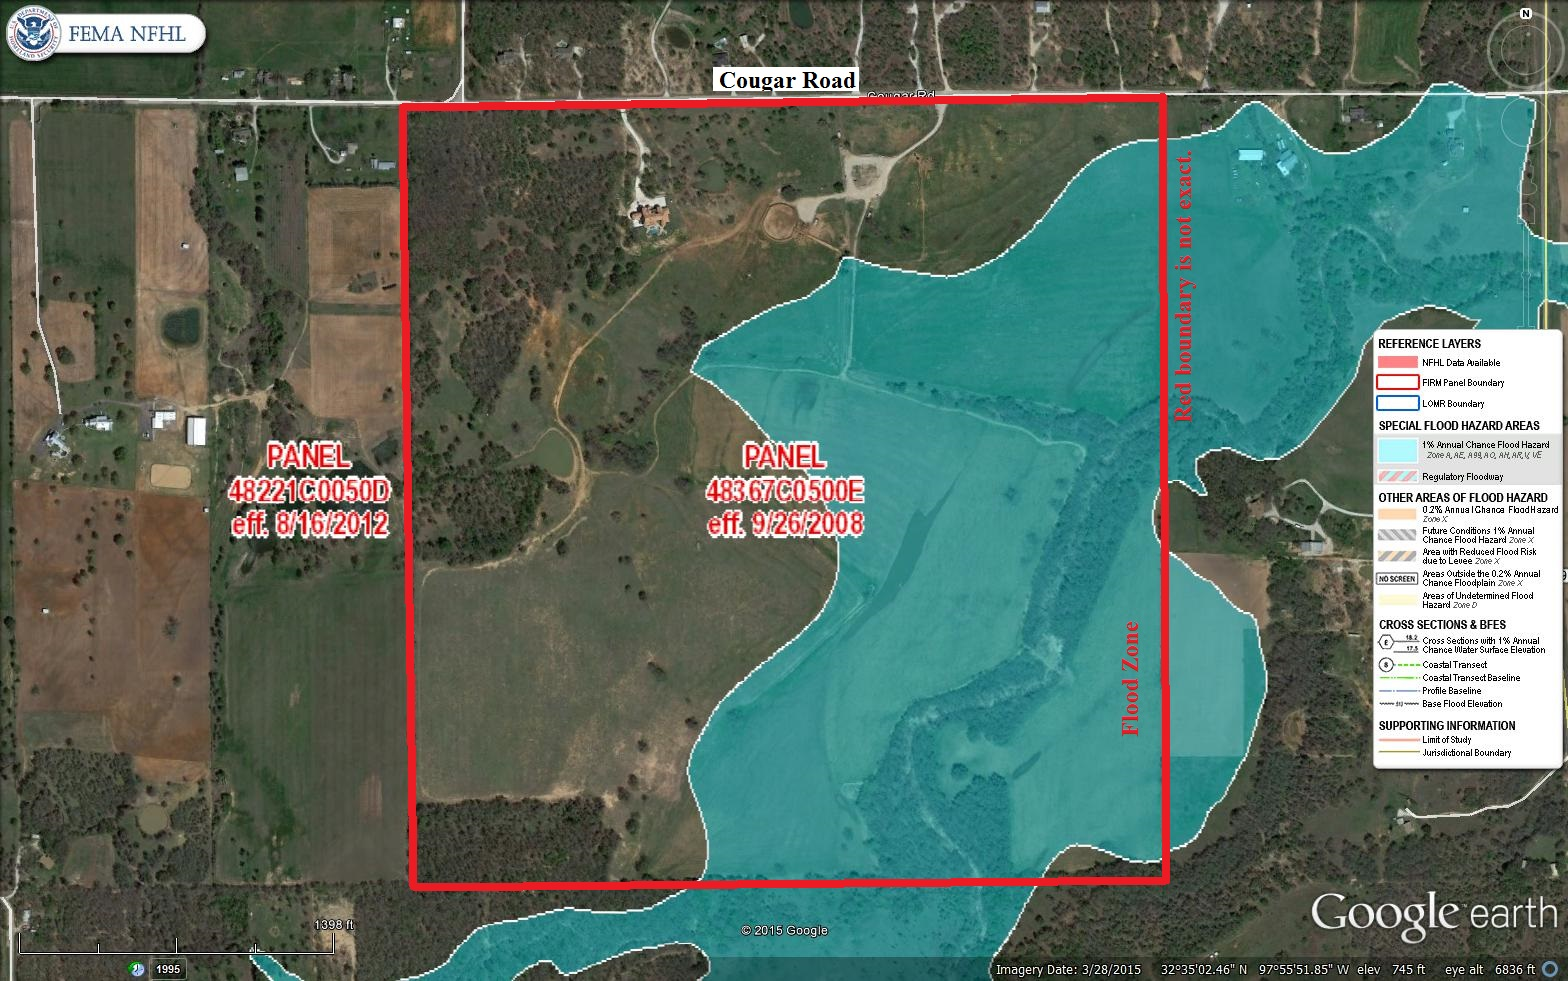 Aerial Map Flood Zone   268 Acre Gorgeous property   801 Cougar Road     Aerial Map Flood Zone     268 Acre Gorgeous property   801 Cougar Road   Lipan  Parker County  Texas